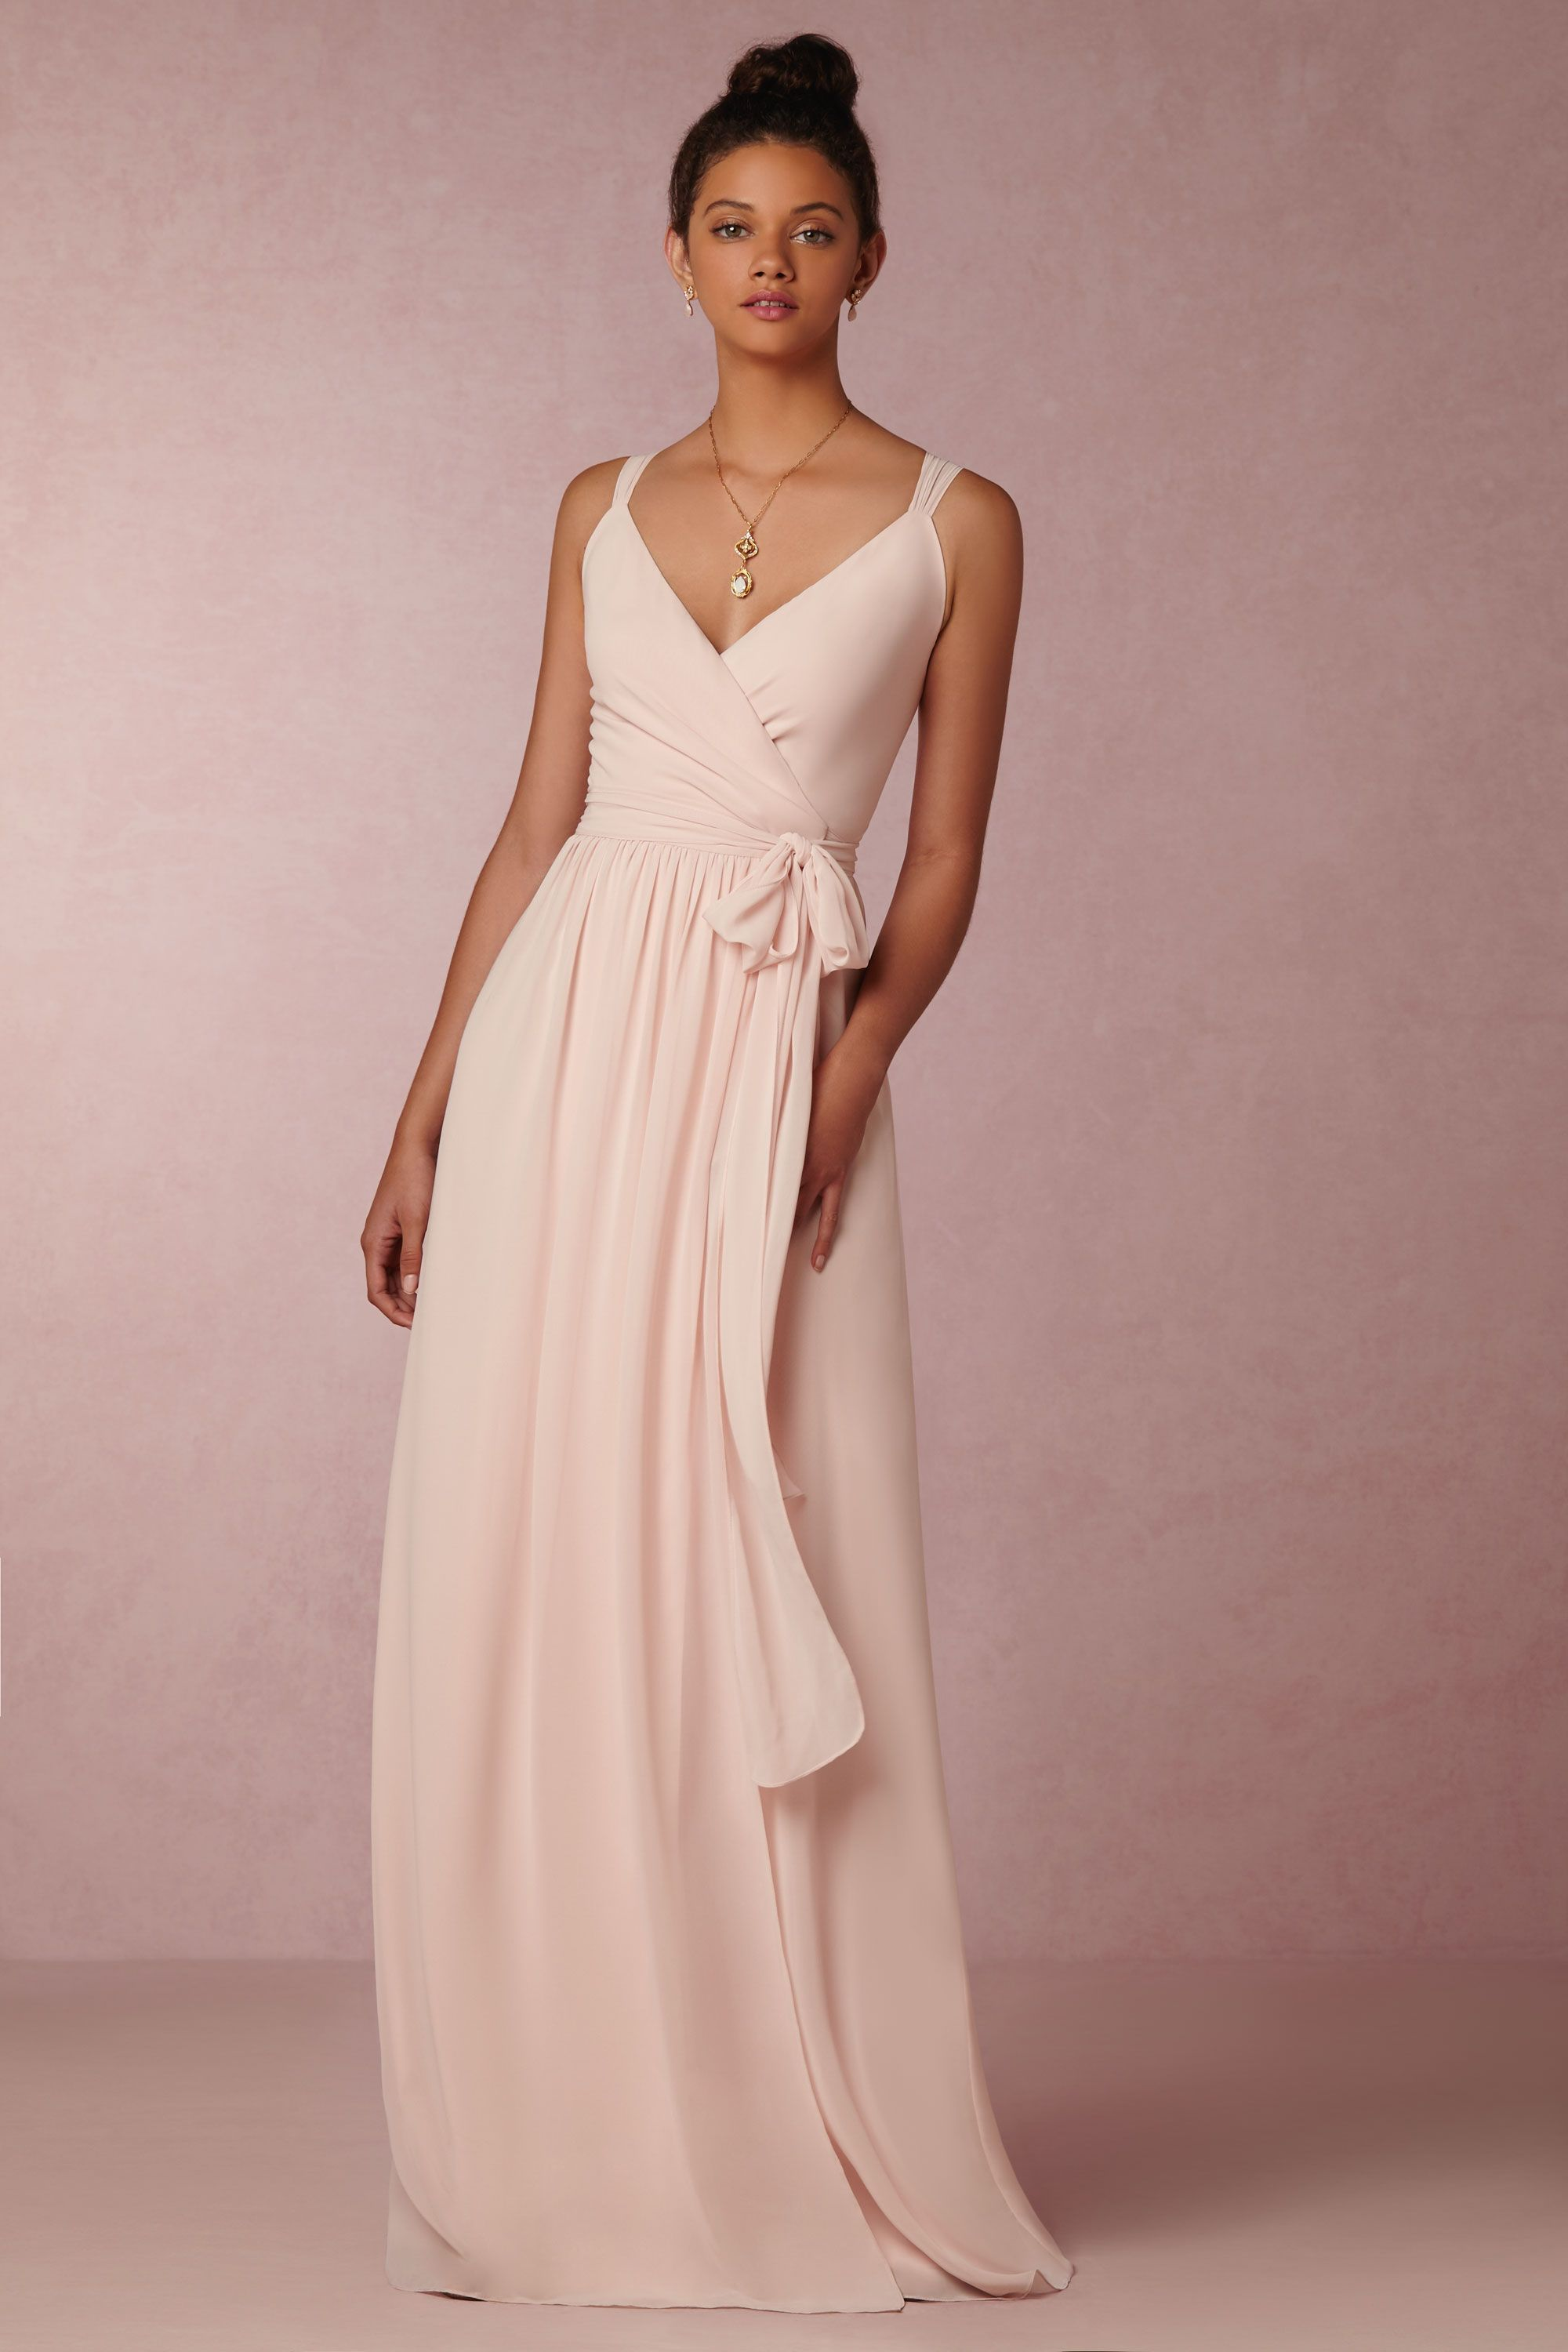 Cadence Dress from @BHLDN | Bridesmaids | Pinterest | Brautjungfern ...